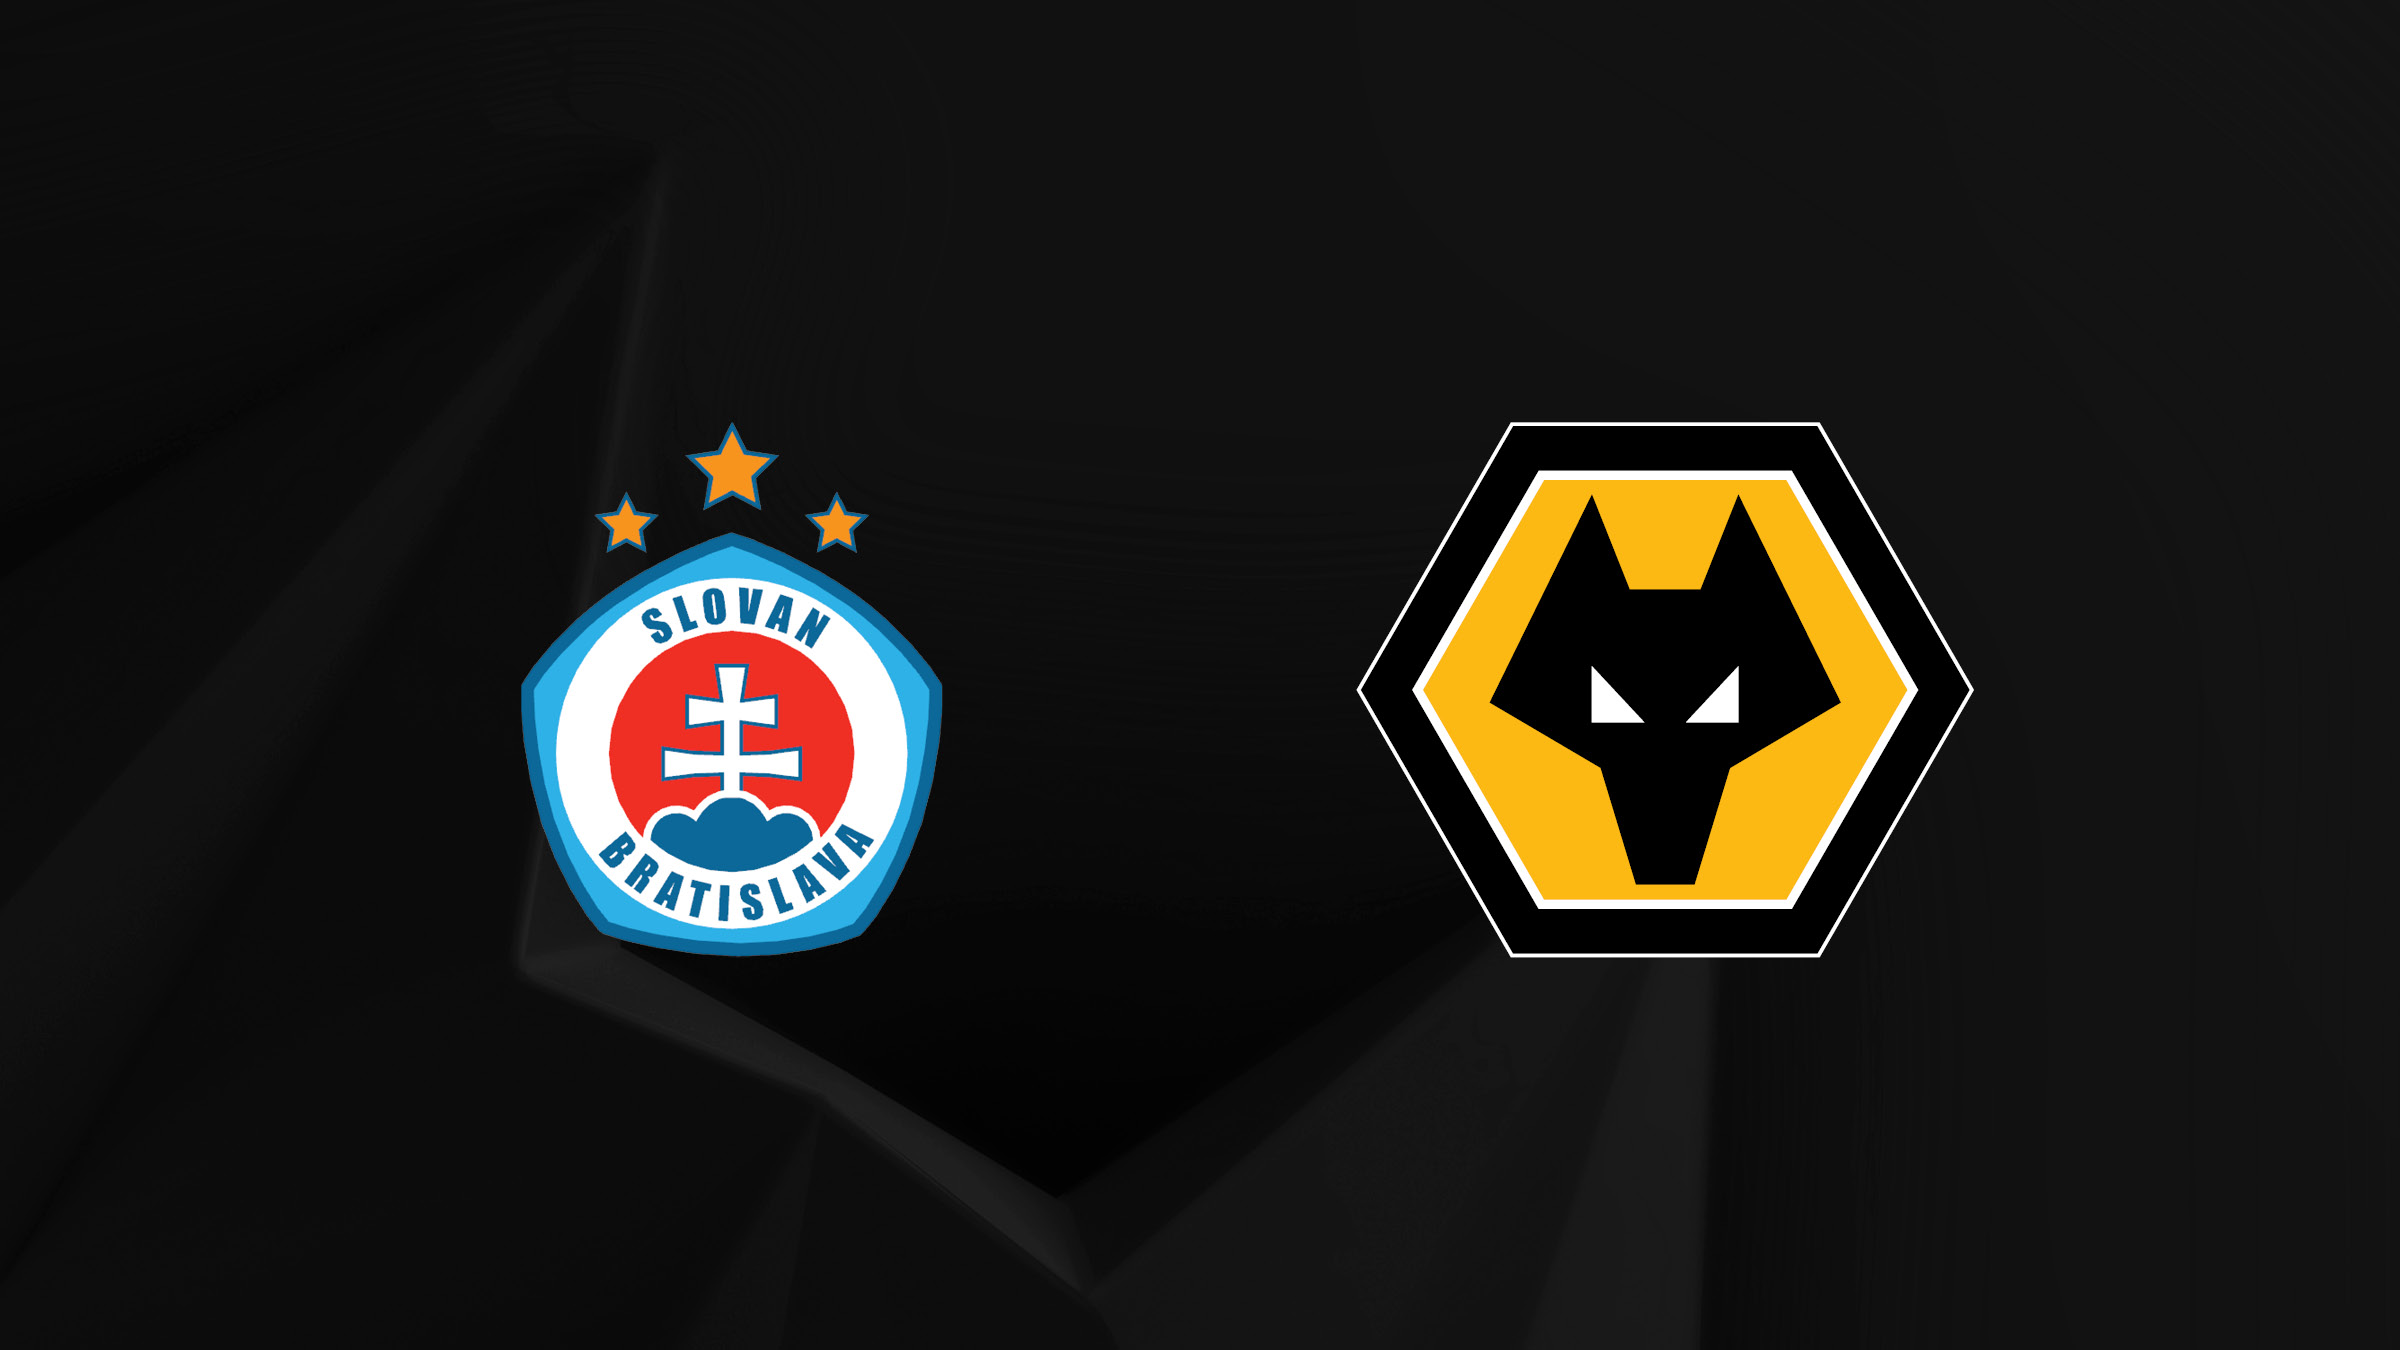 Watch the Slovan Bratislava tie at Molineux